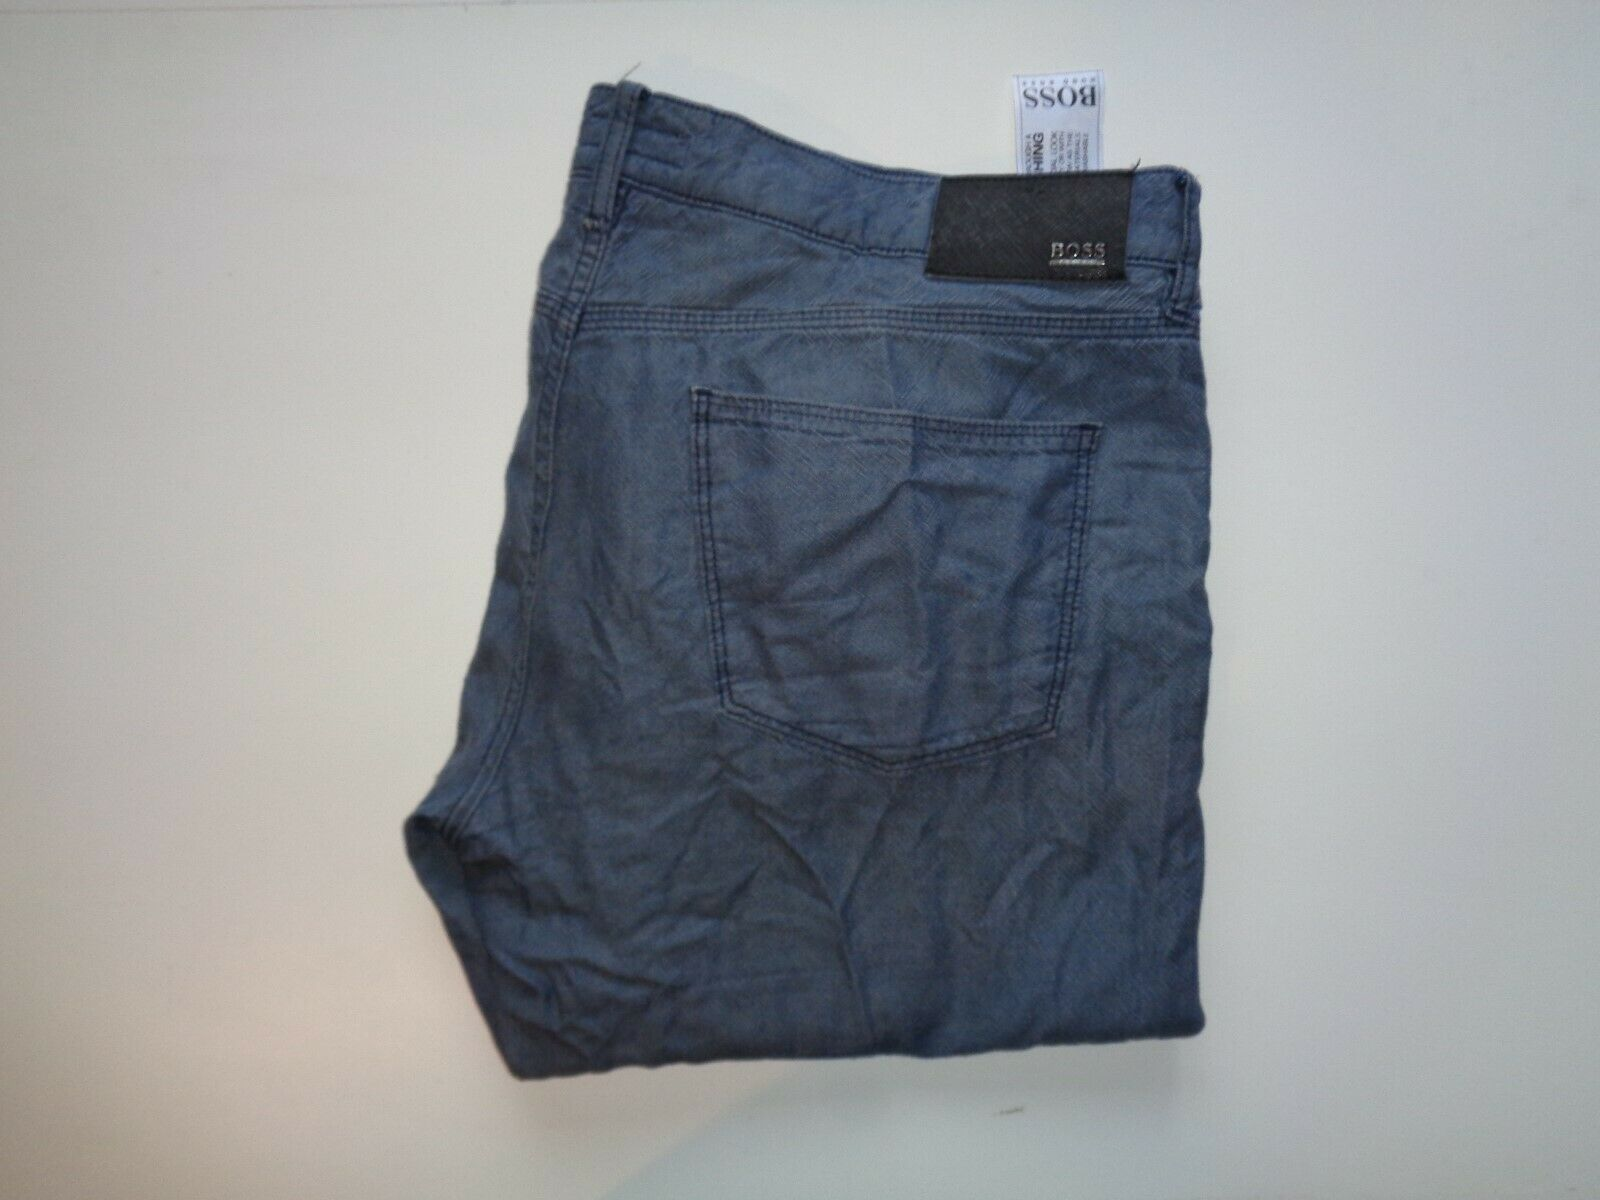 Hugo Boss Iowa1-10 grey jeans Waist 38